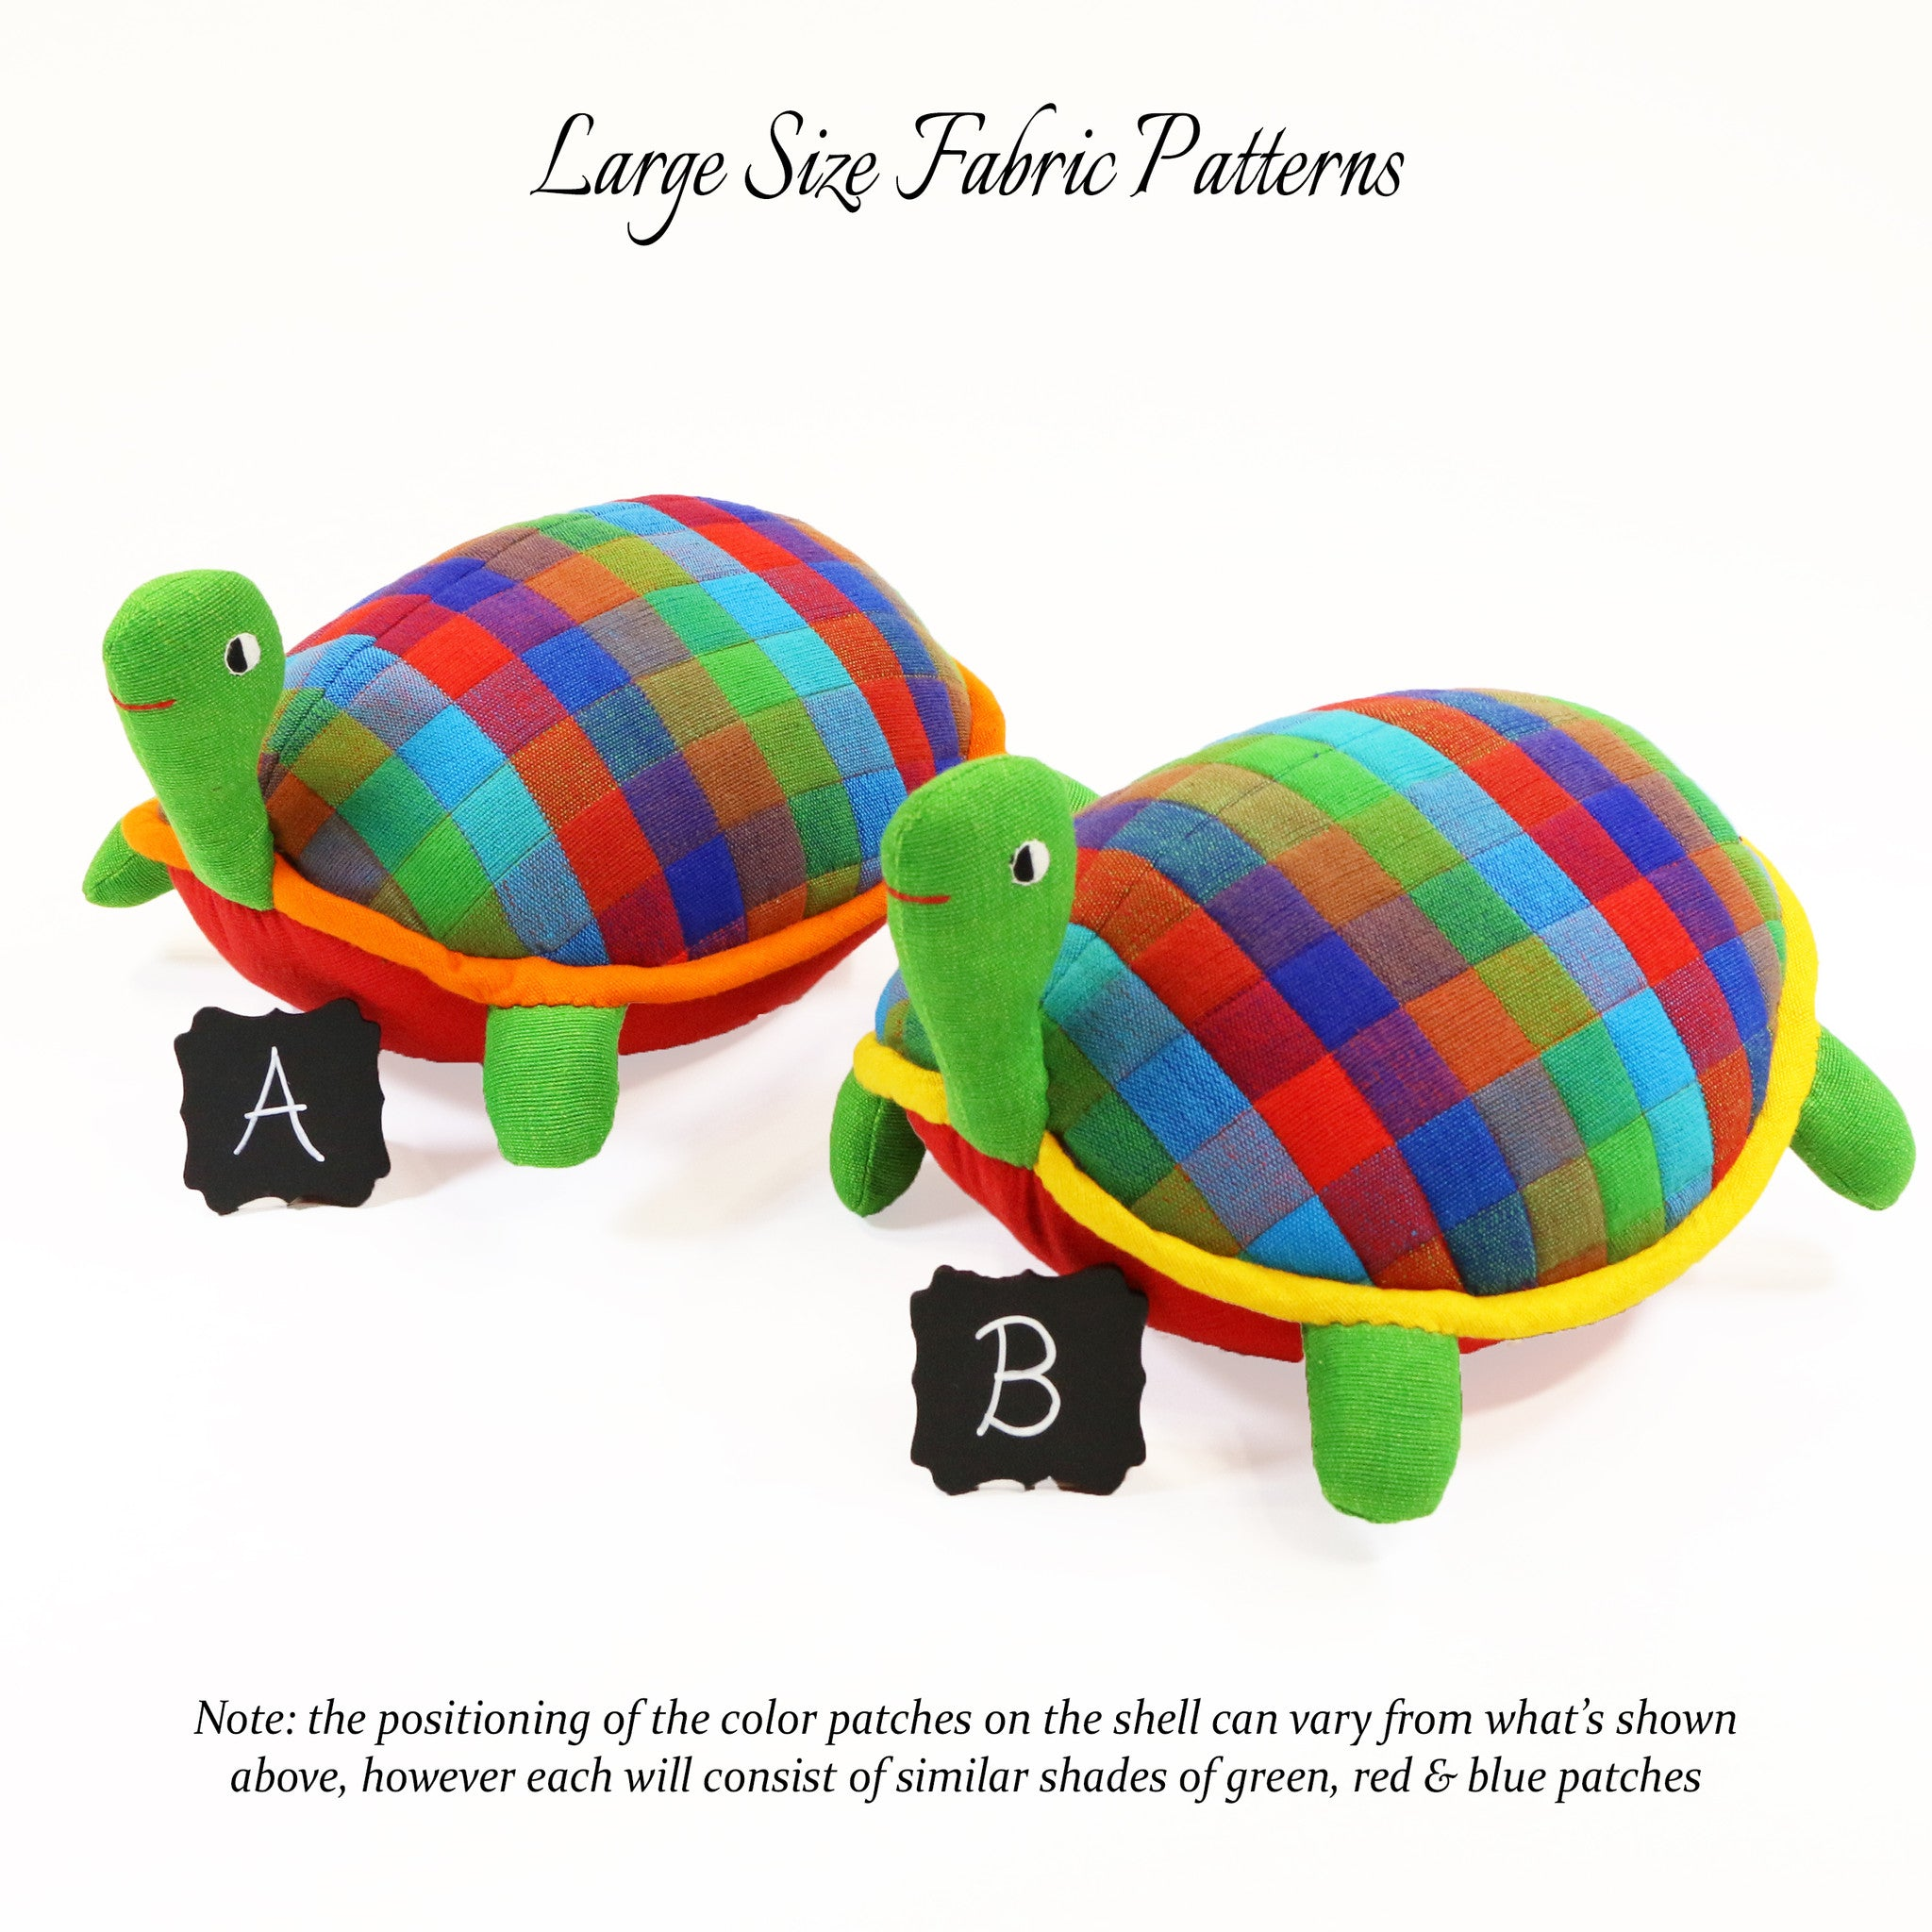 Terry, the Turtle – all large size fabric patterns shown